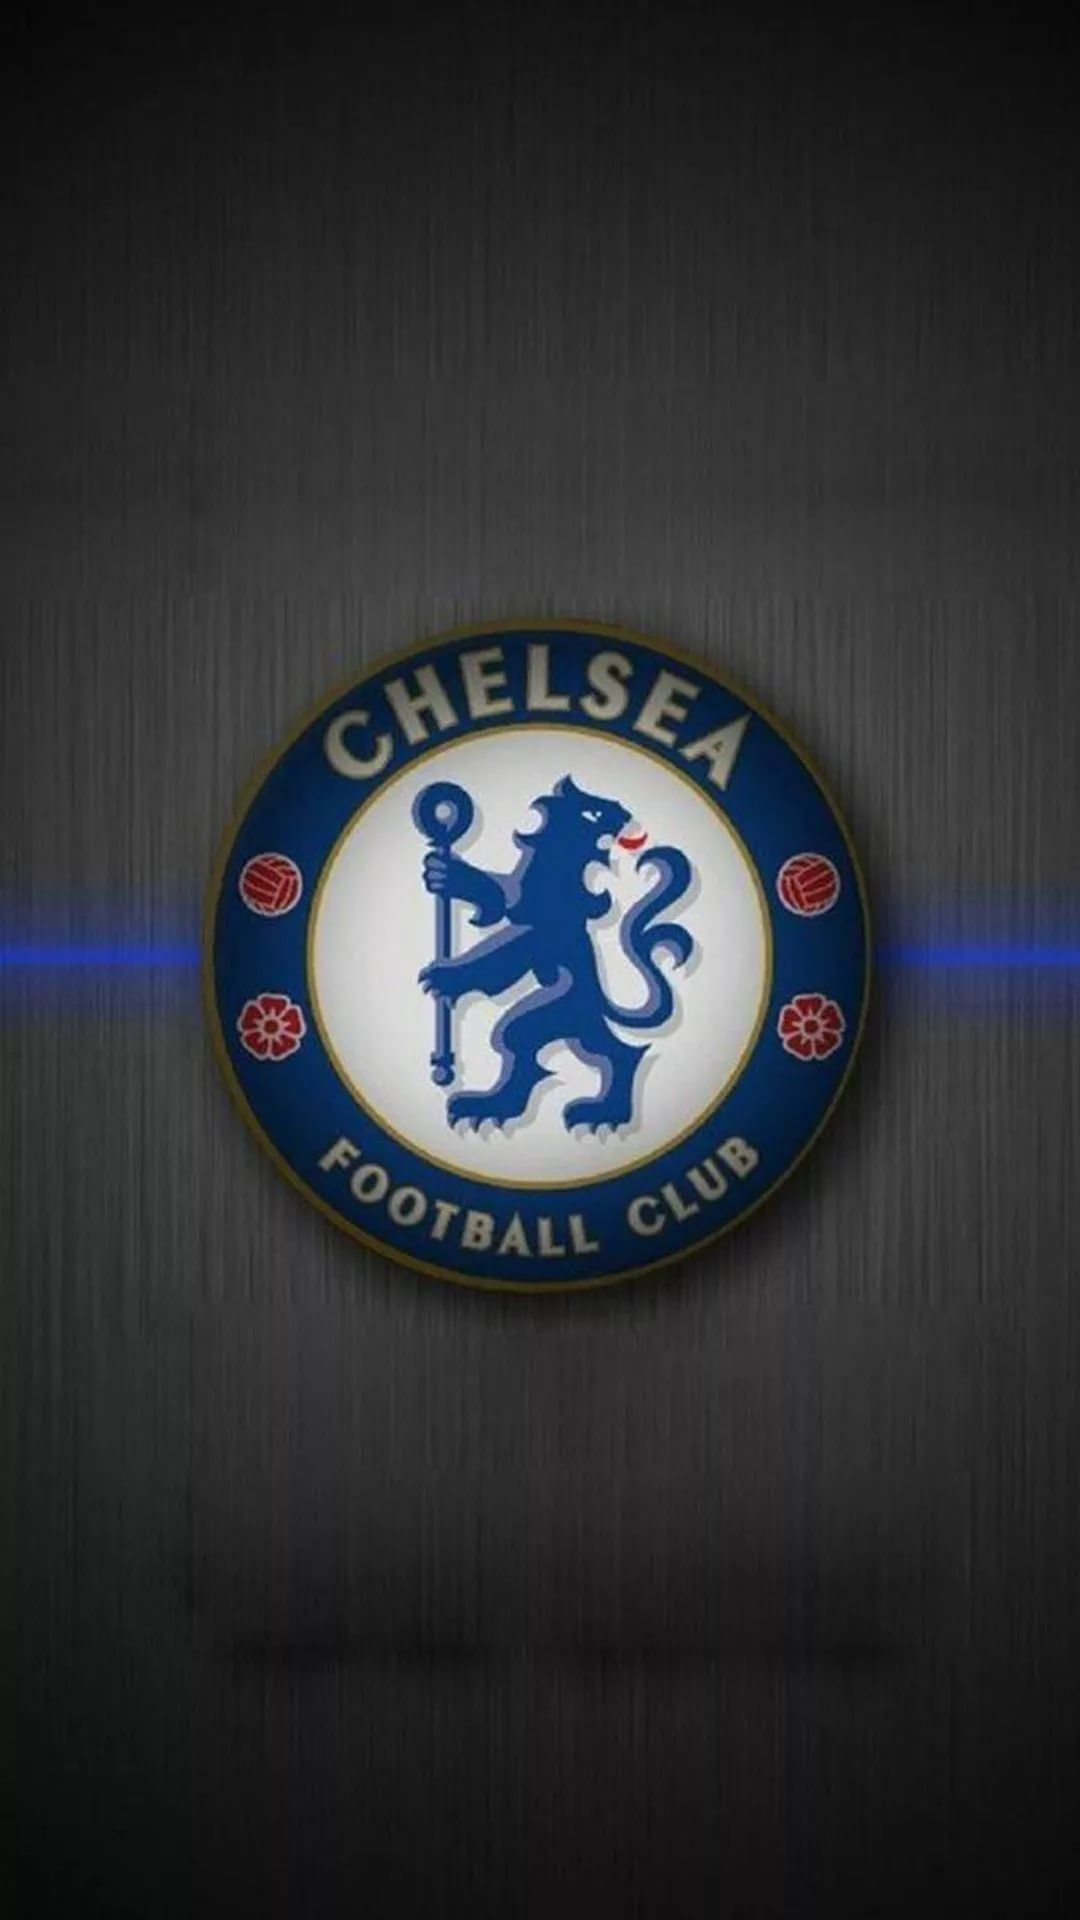 Chelsea Fc wallpaper for android